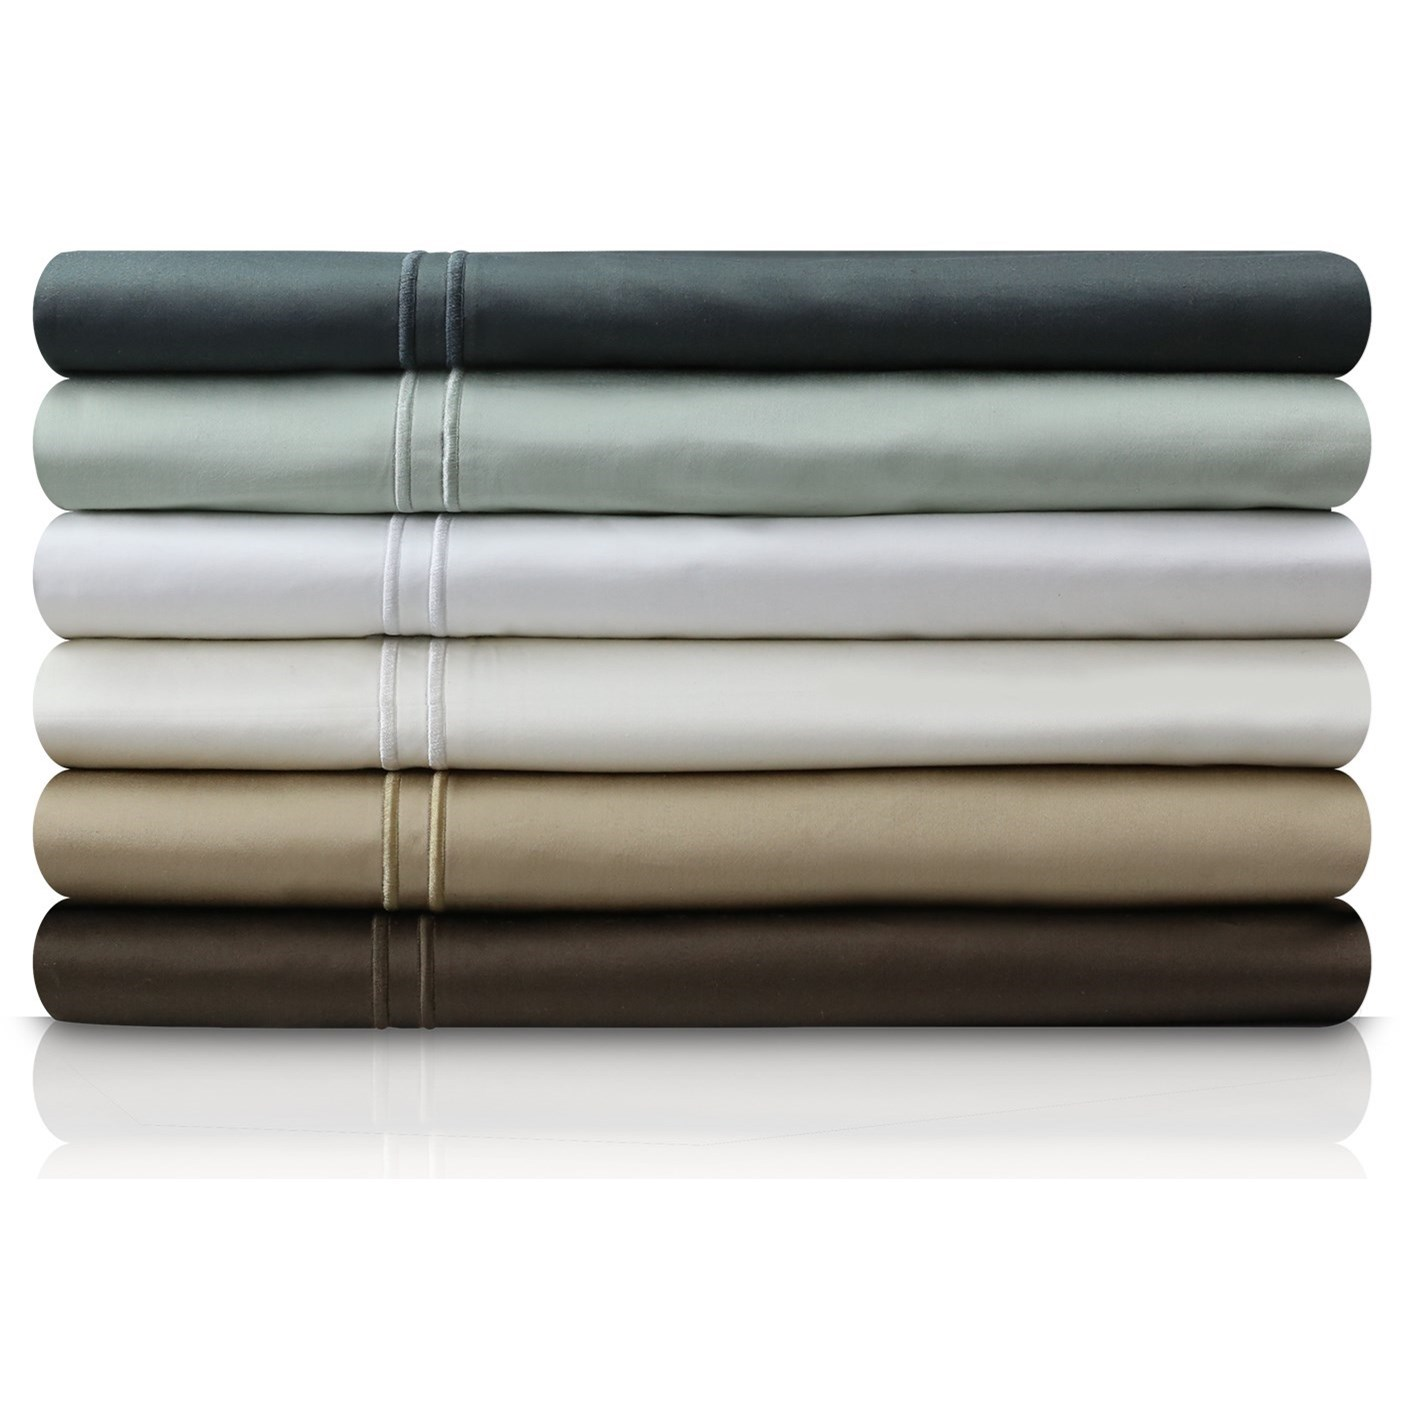 Malouf Egyptian Cotton Queen 600 TC Egyptian Cotton Pillowcases  - Item Number: MA06QQWHPC